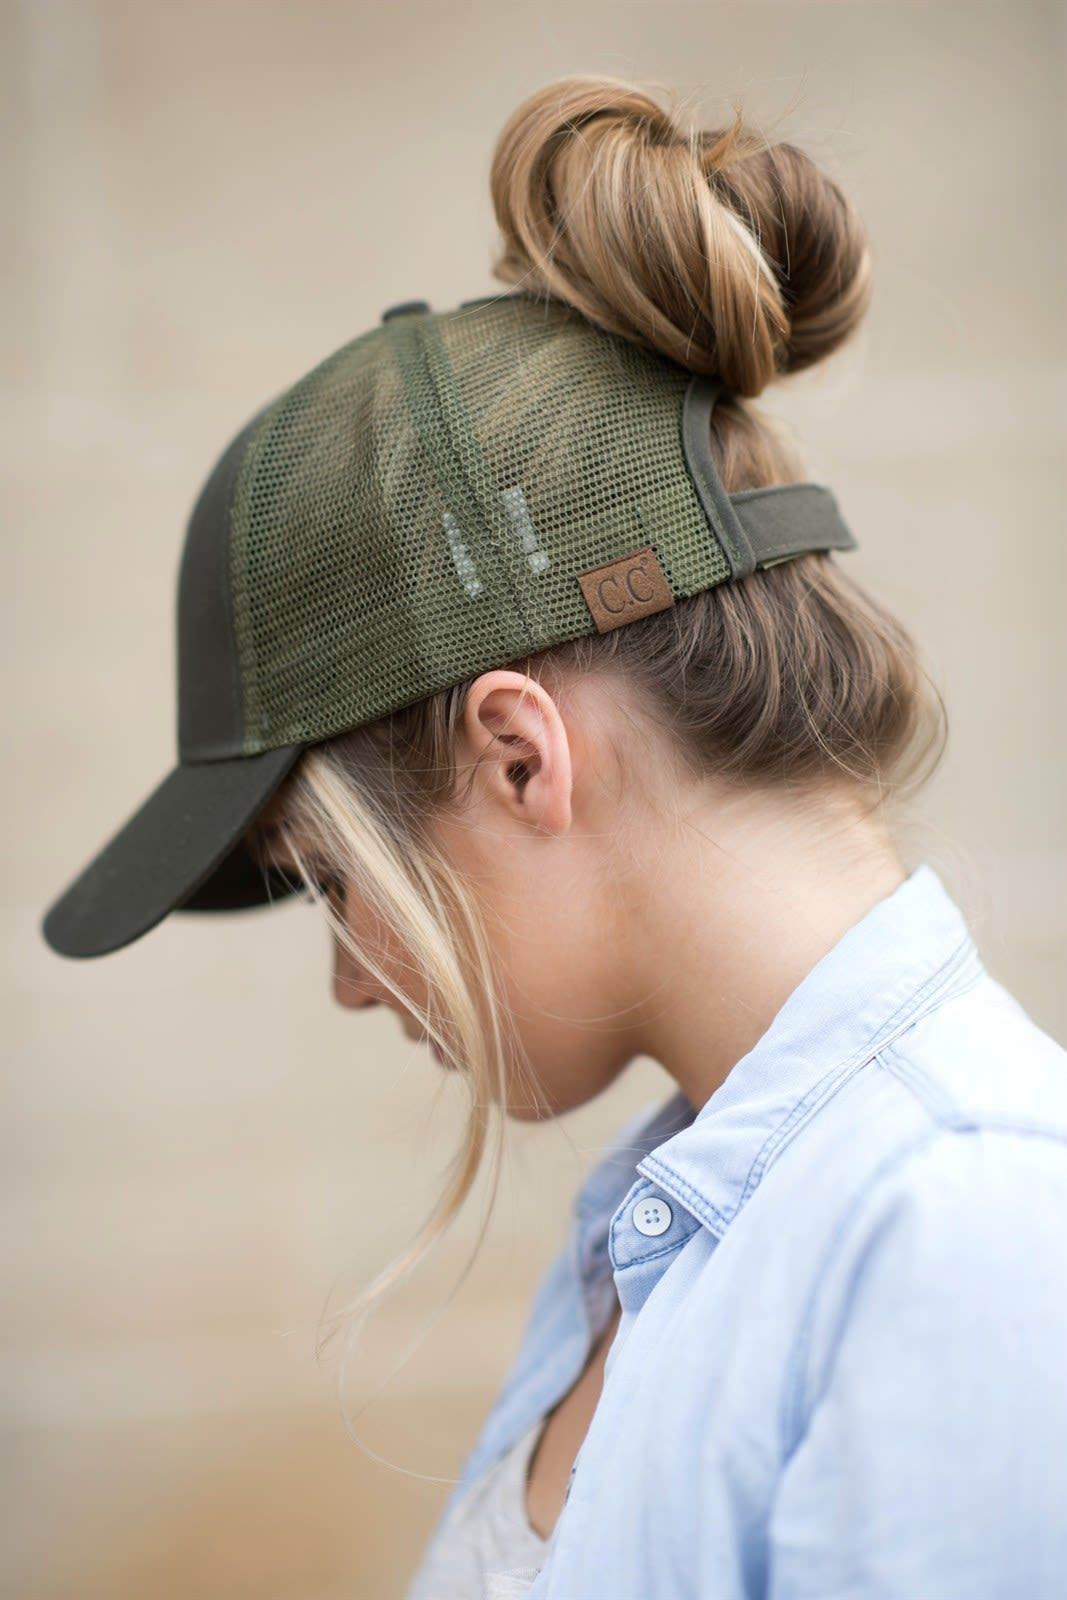 The baseball hat just got a MAJOR upgrade! Don t miss out on our  bestselling C.C brand top knot trucker hats! All the function of a regular  ball cap 7c337a6fbd2